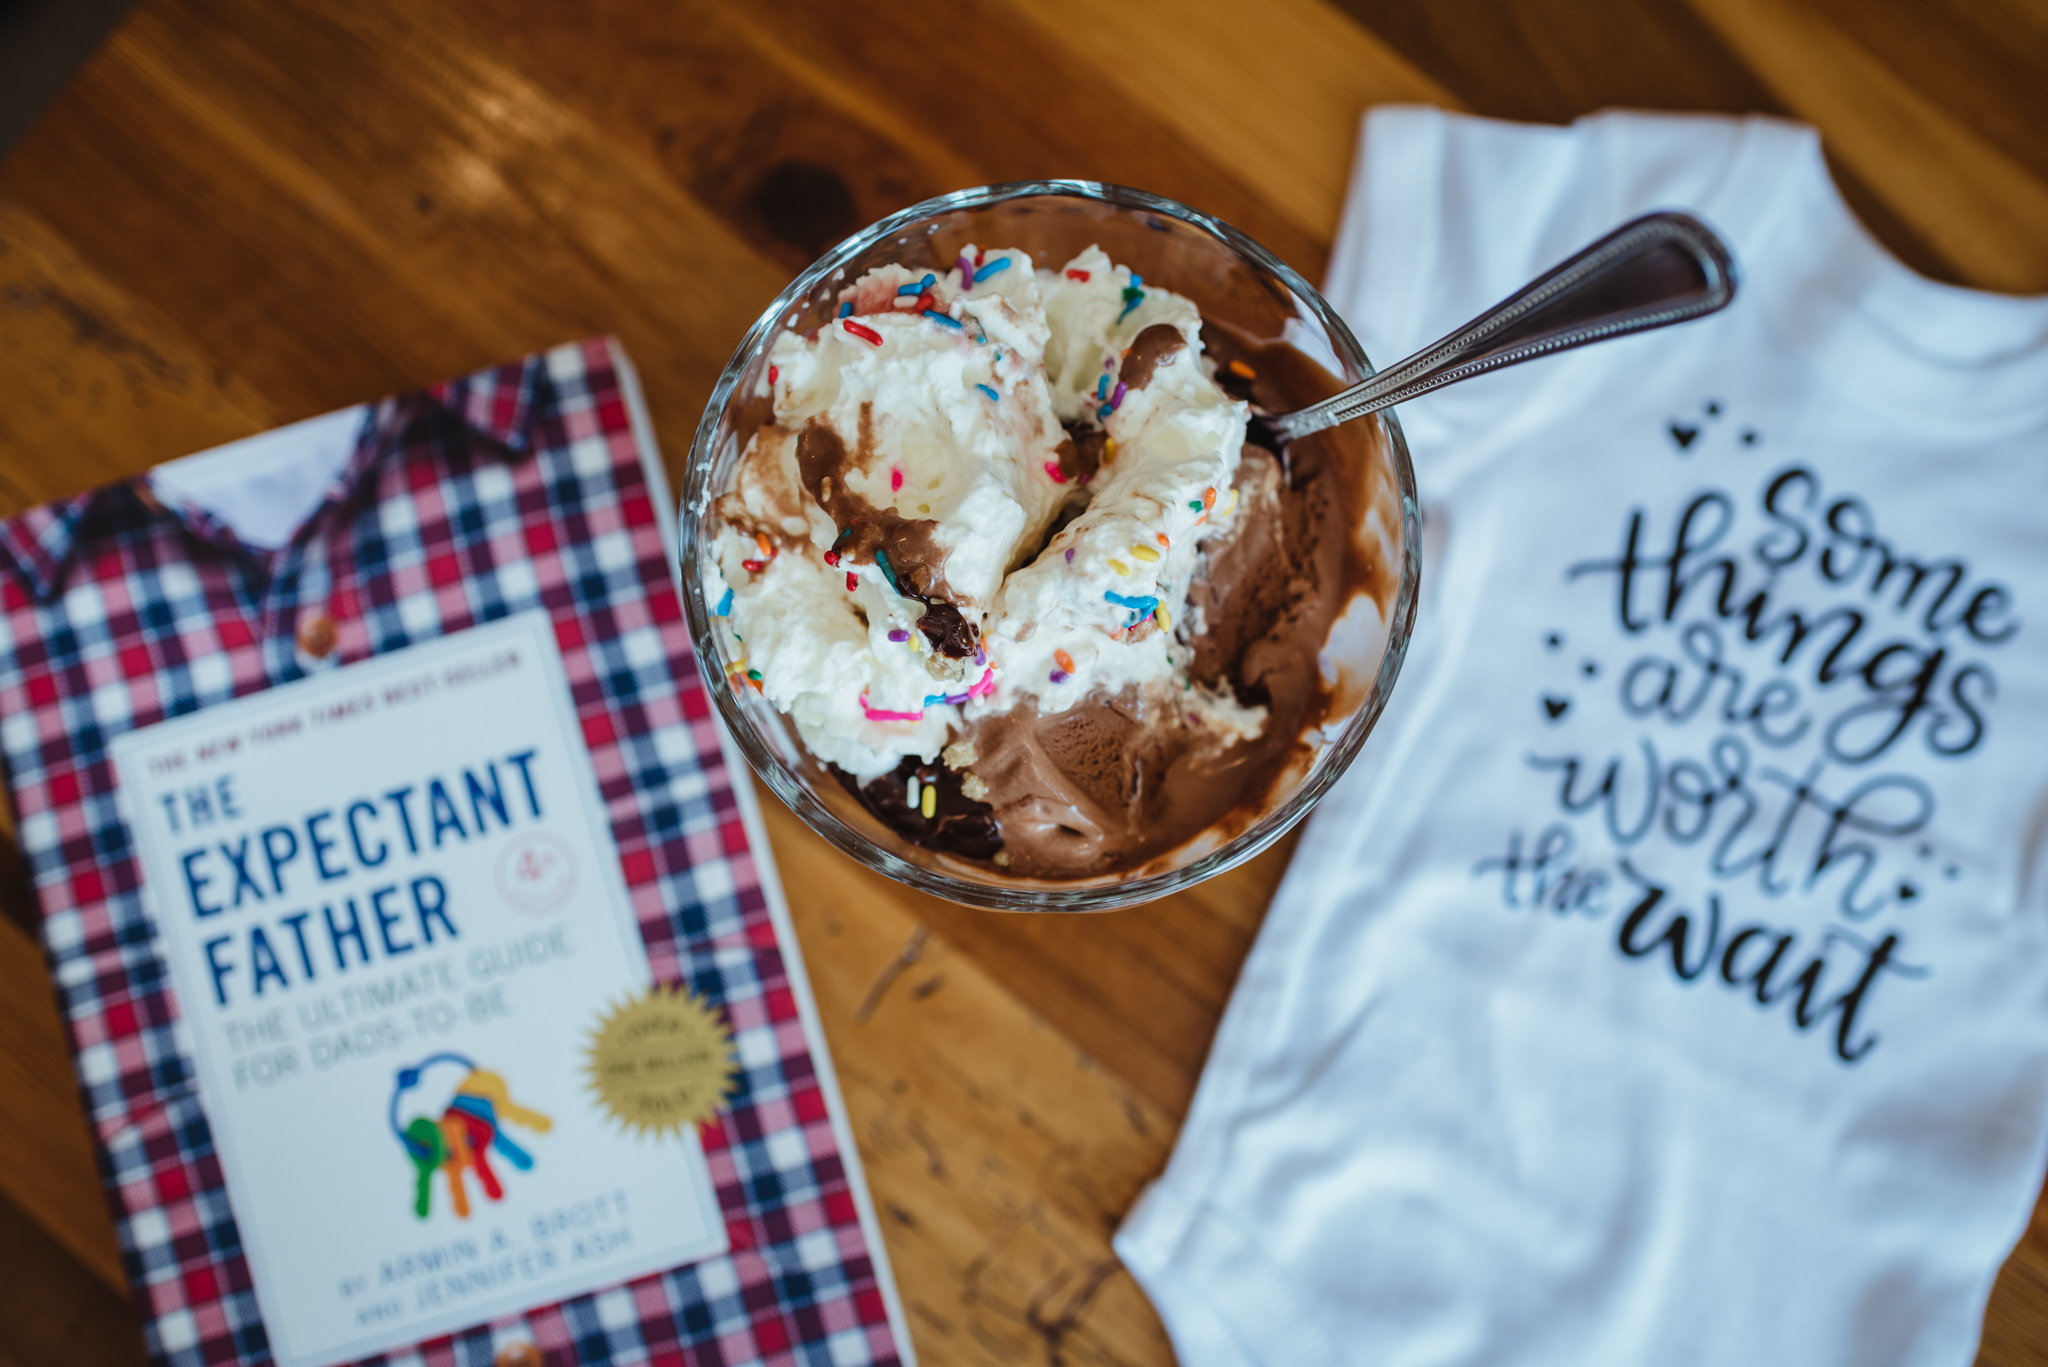 Details of an ice cream sundae, a onesie, and the expectant father book, image by Rose Trail Images.